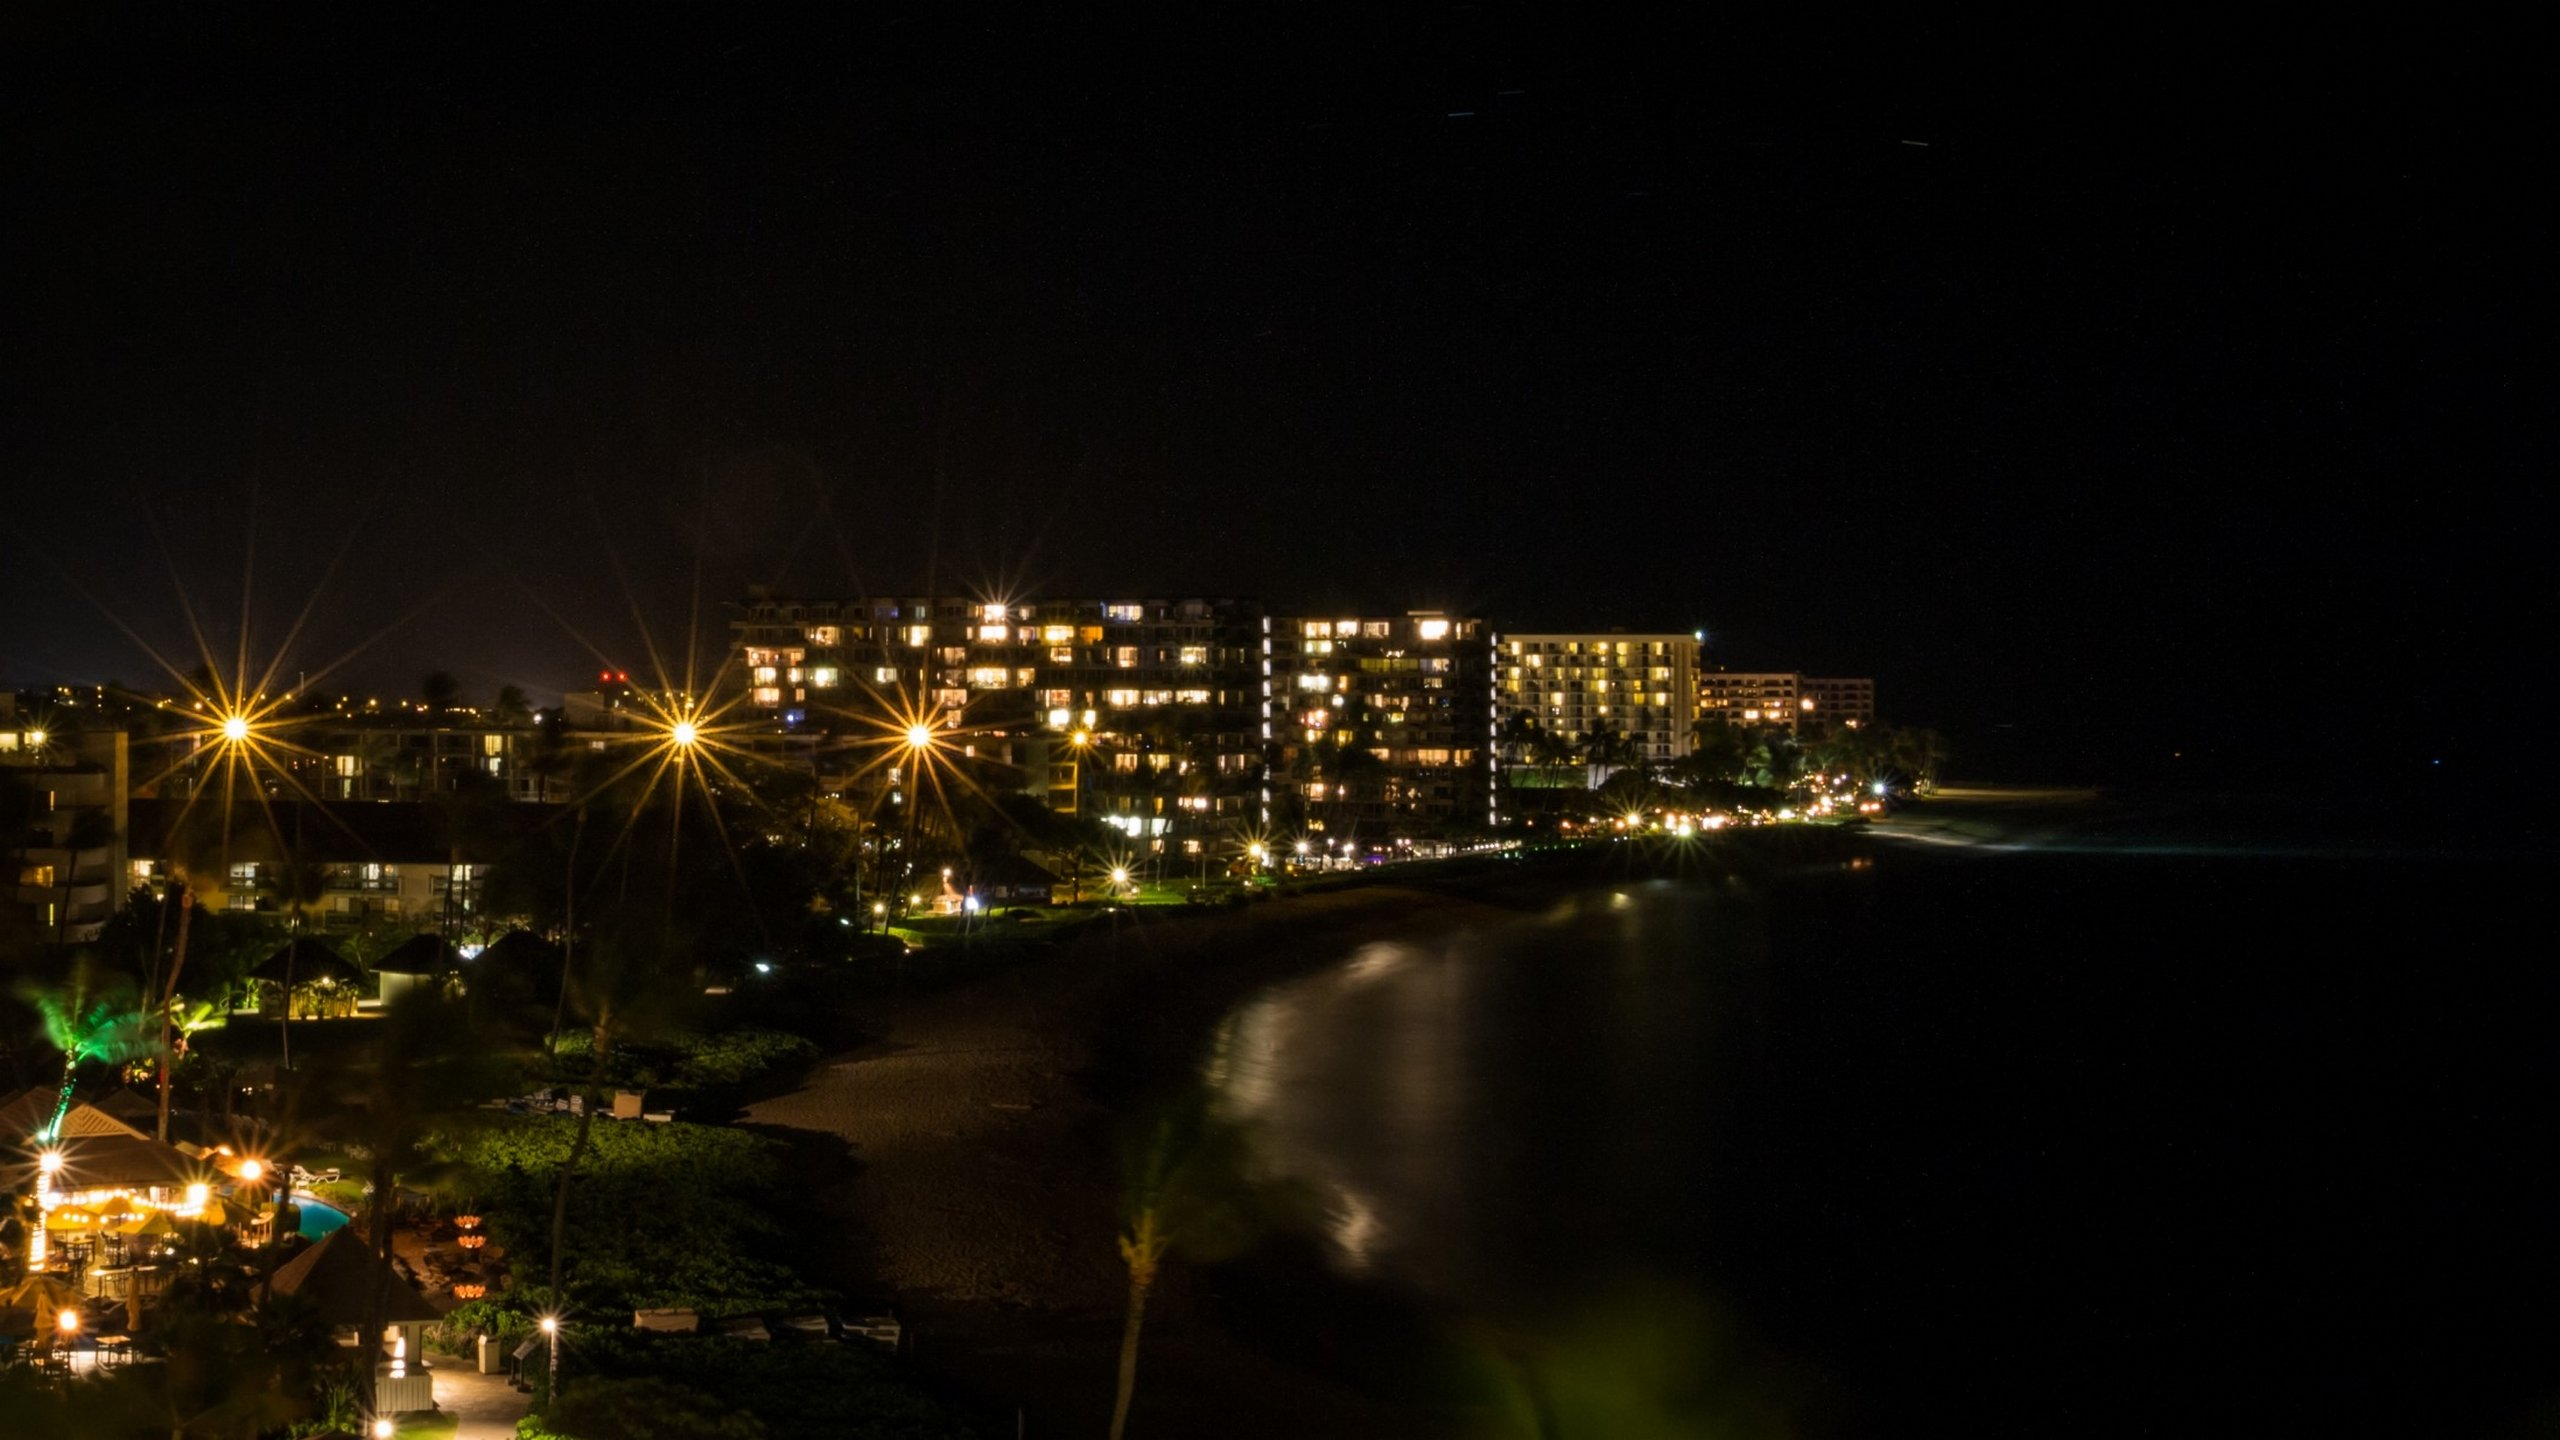 Hawaii Maui Kaanapali Beach at Night [2560x1440] wallpaper 2560x1440